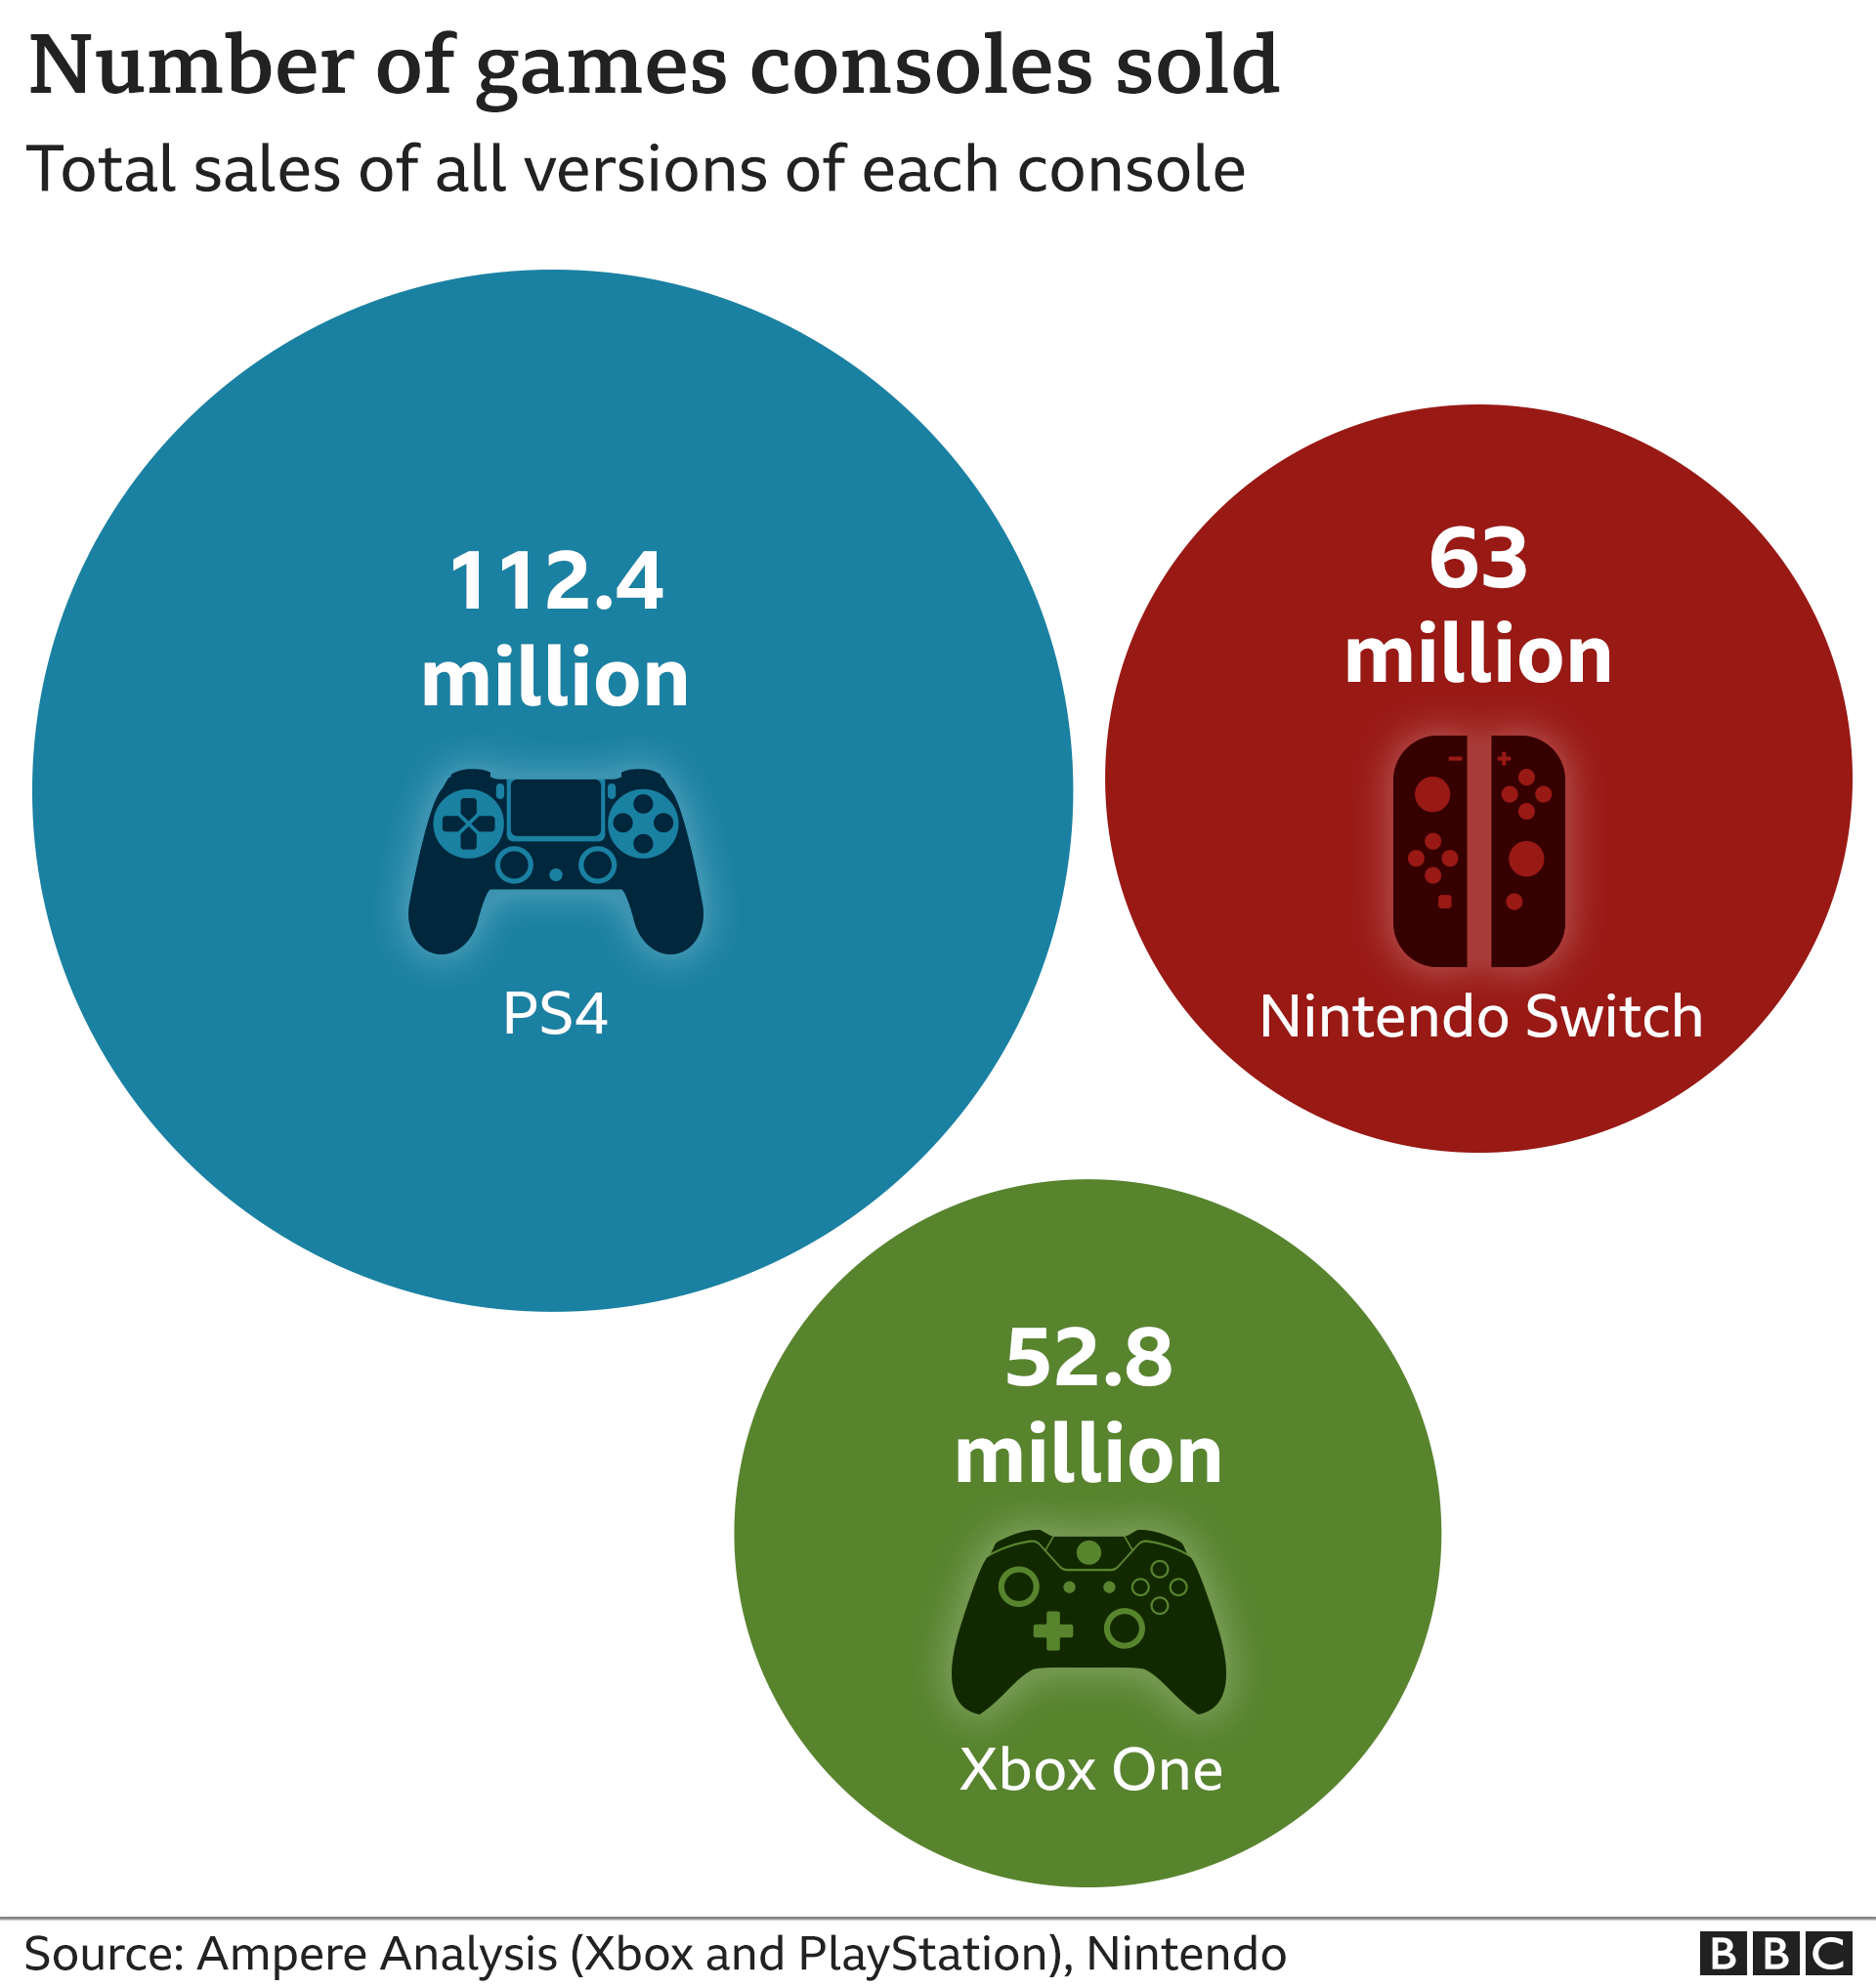 Sales of previous generation games consoles. PS4 - 112.4 million. Xbox One - 52.8 million. (Source: Ampere Analysis) Nintendo Switch - 63 million. (Source Nintendo).